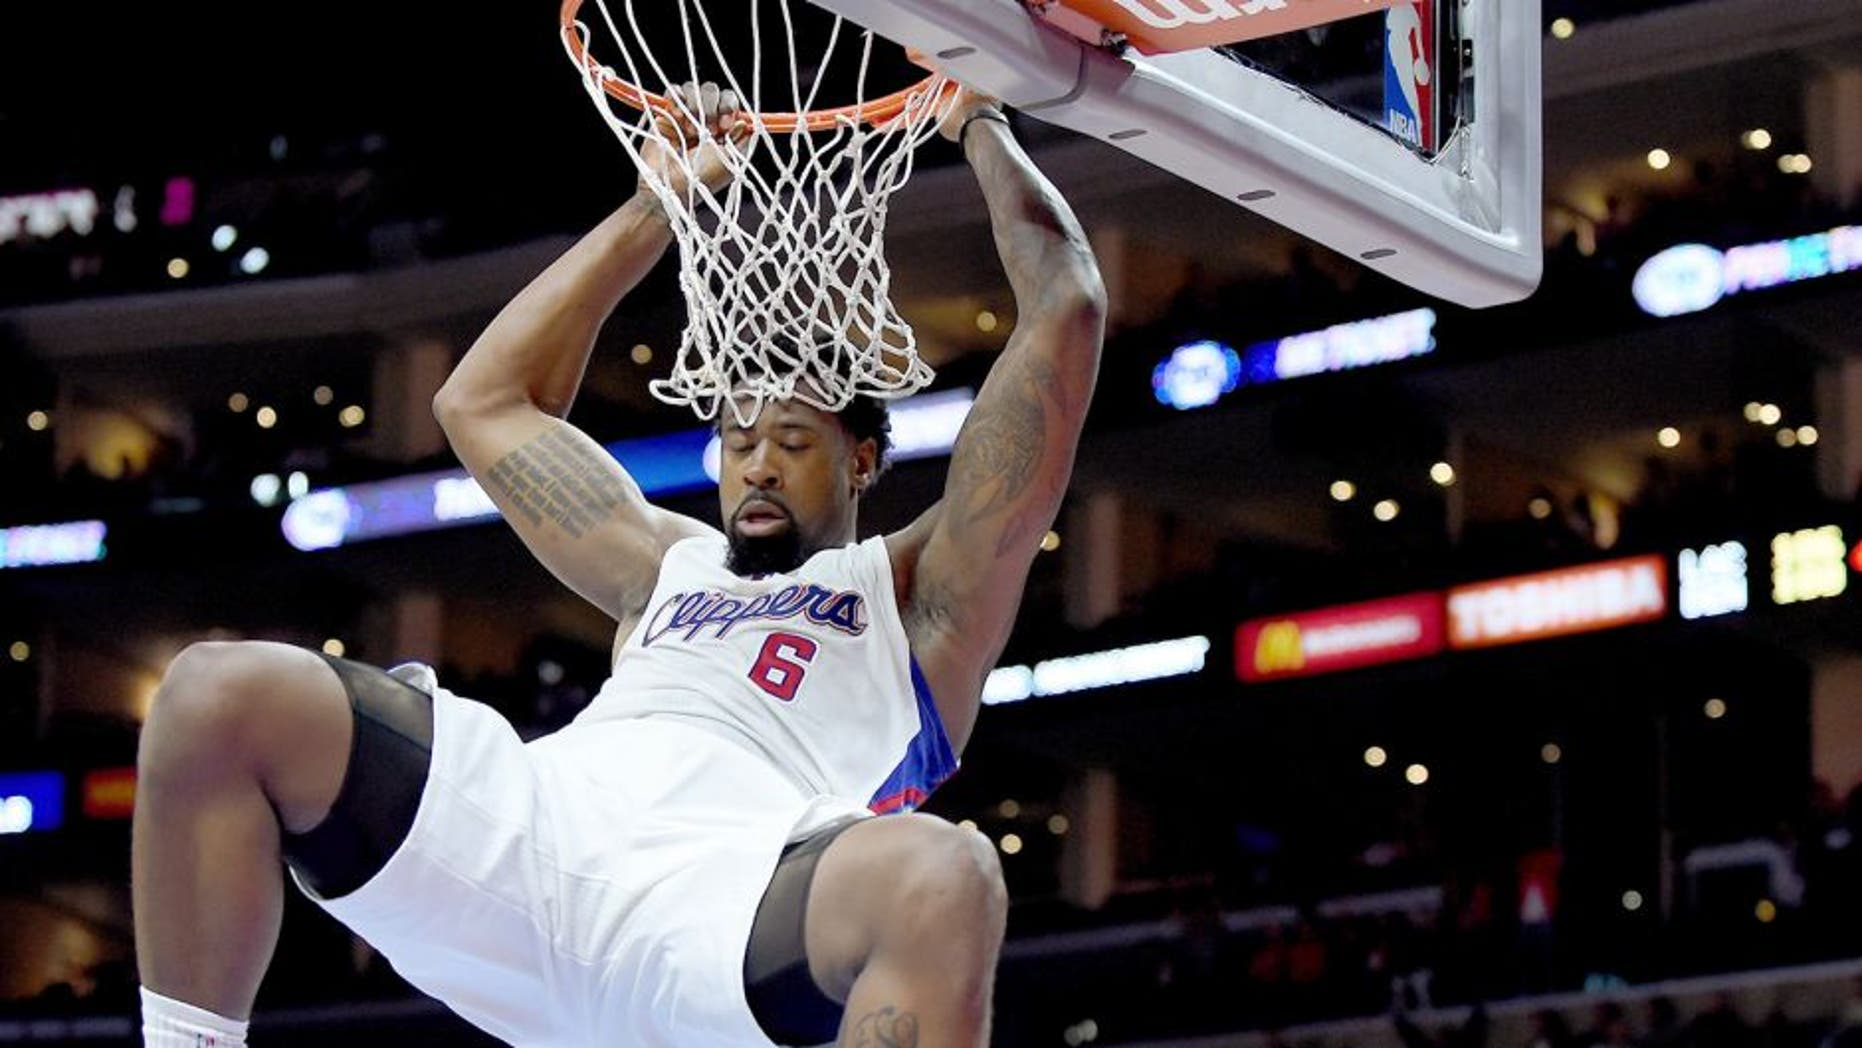 LOS ANGELES, CA - APRIL 13: DeAndre Jordan #6 of the Los Angeles Clippers scores on a dunk in front of Randy Foye #4 of the Denver Nuggets during a 110-103 Clipper win at Staples Center on April 13, 2015 in Los Angeles, California. NOTE TO USER: User expressly acknowledges and agrees that, by downloading and or using this Photograph, user is consenting to the terms and condition of the Getty Images License Agreement. (Photo by Harry How/Getty Images)